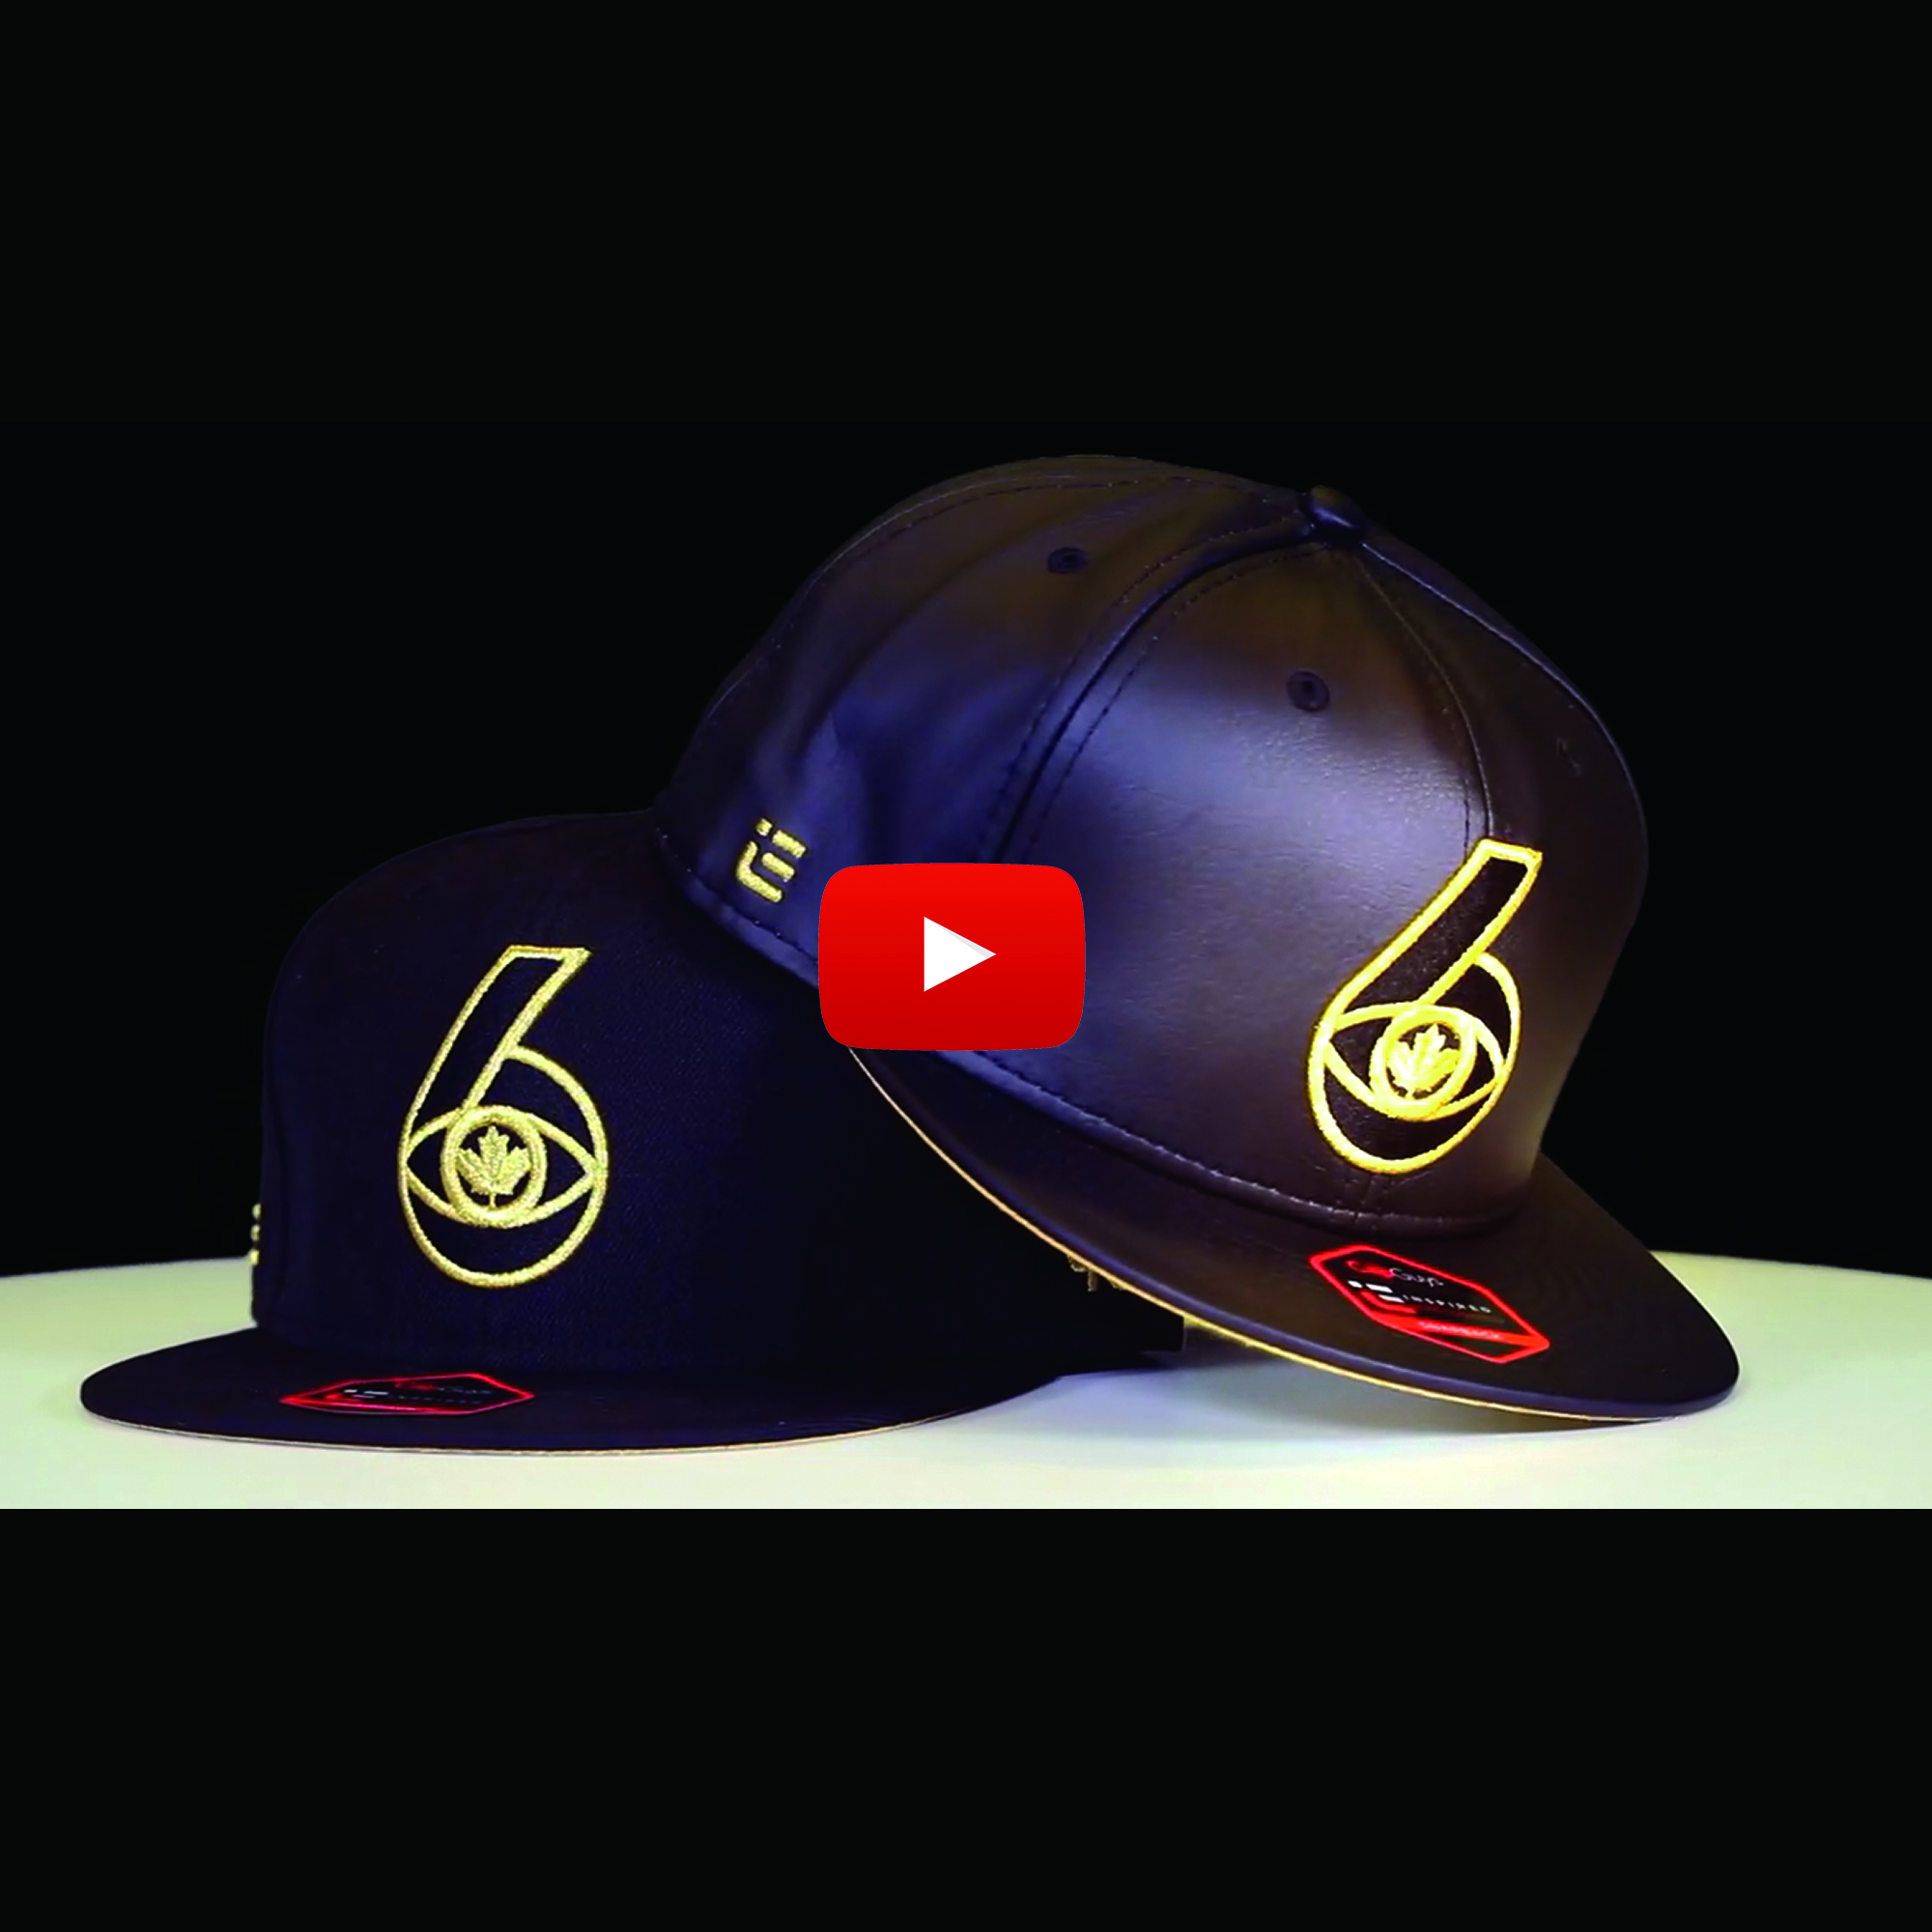 The Cap Guys - Inspired Exclusives - 6 Visions - Commercial Teaser